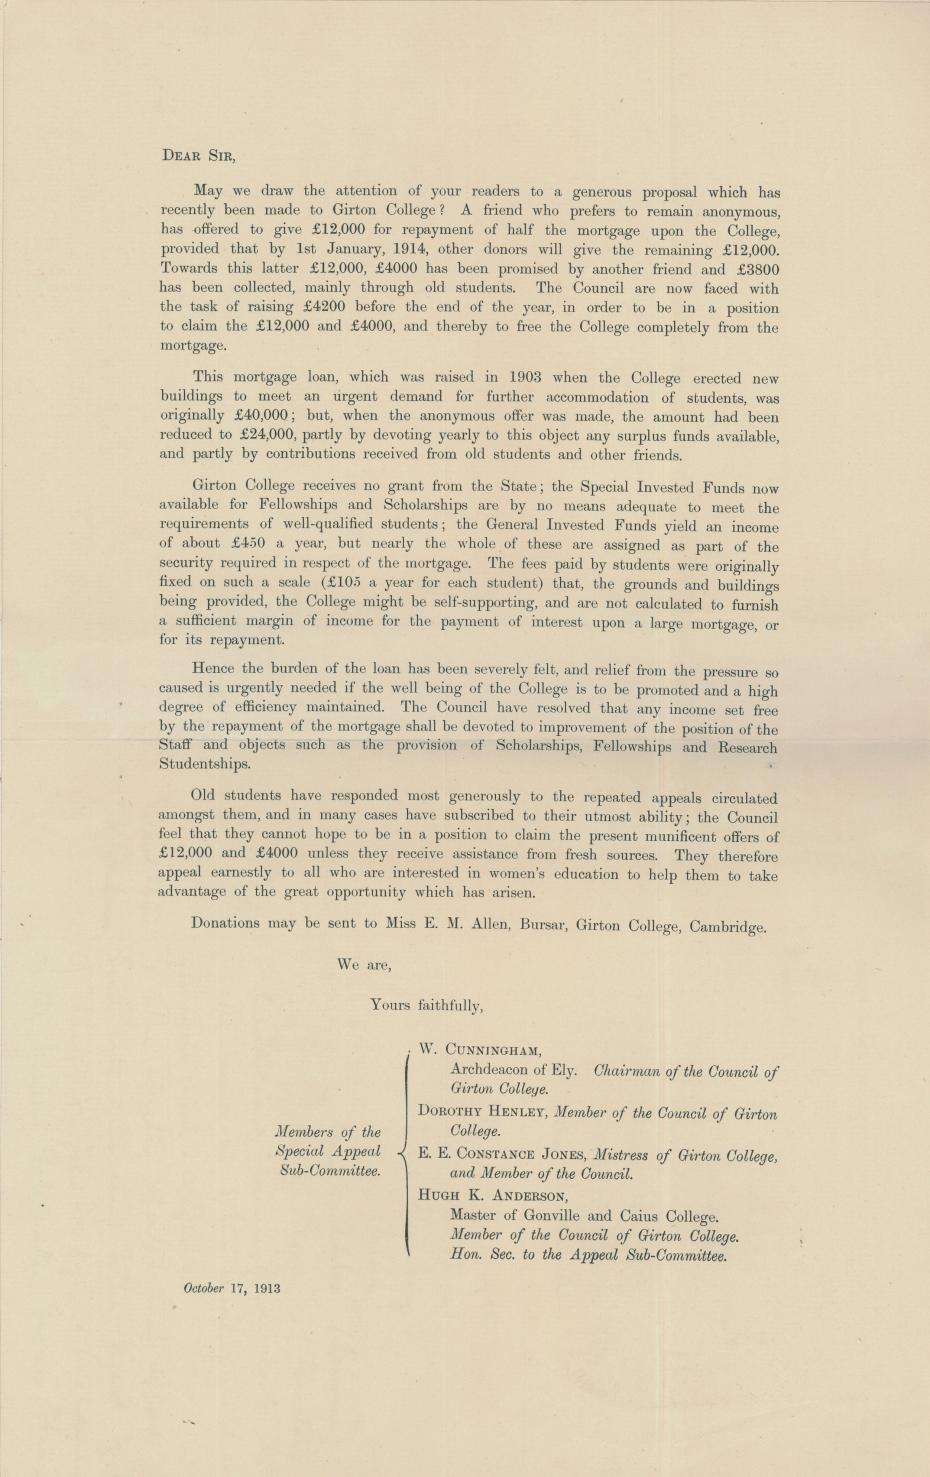 Appeal letter to the national newspapers, from the College Council minutes 14 October 1913 (archive reference: GCGB 2/1/20pt)